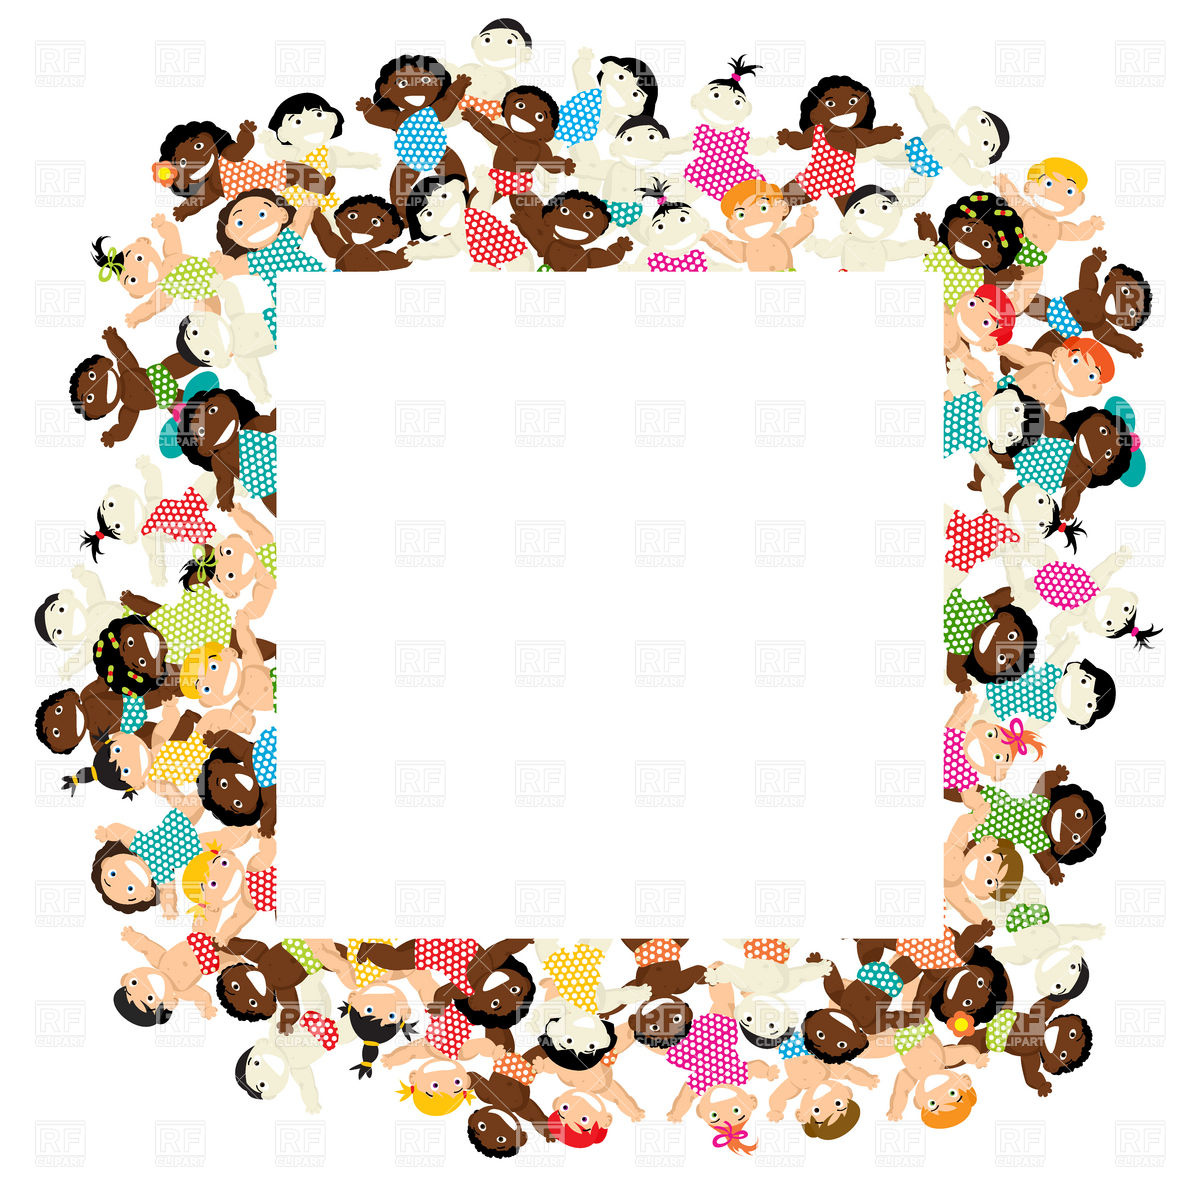 1200x1200 Decorative Frame With Multiethnic Children Royalty Free Vector